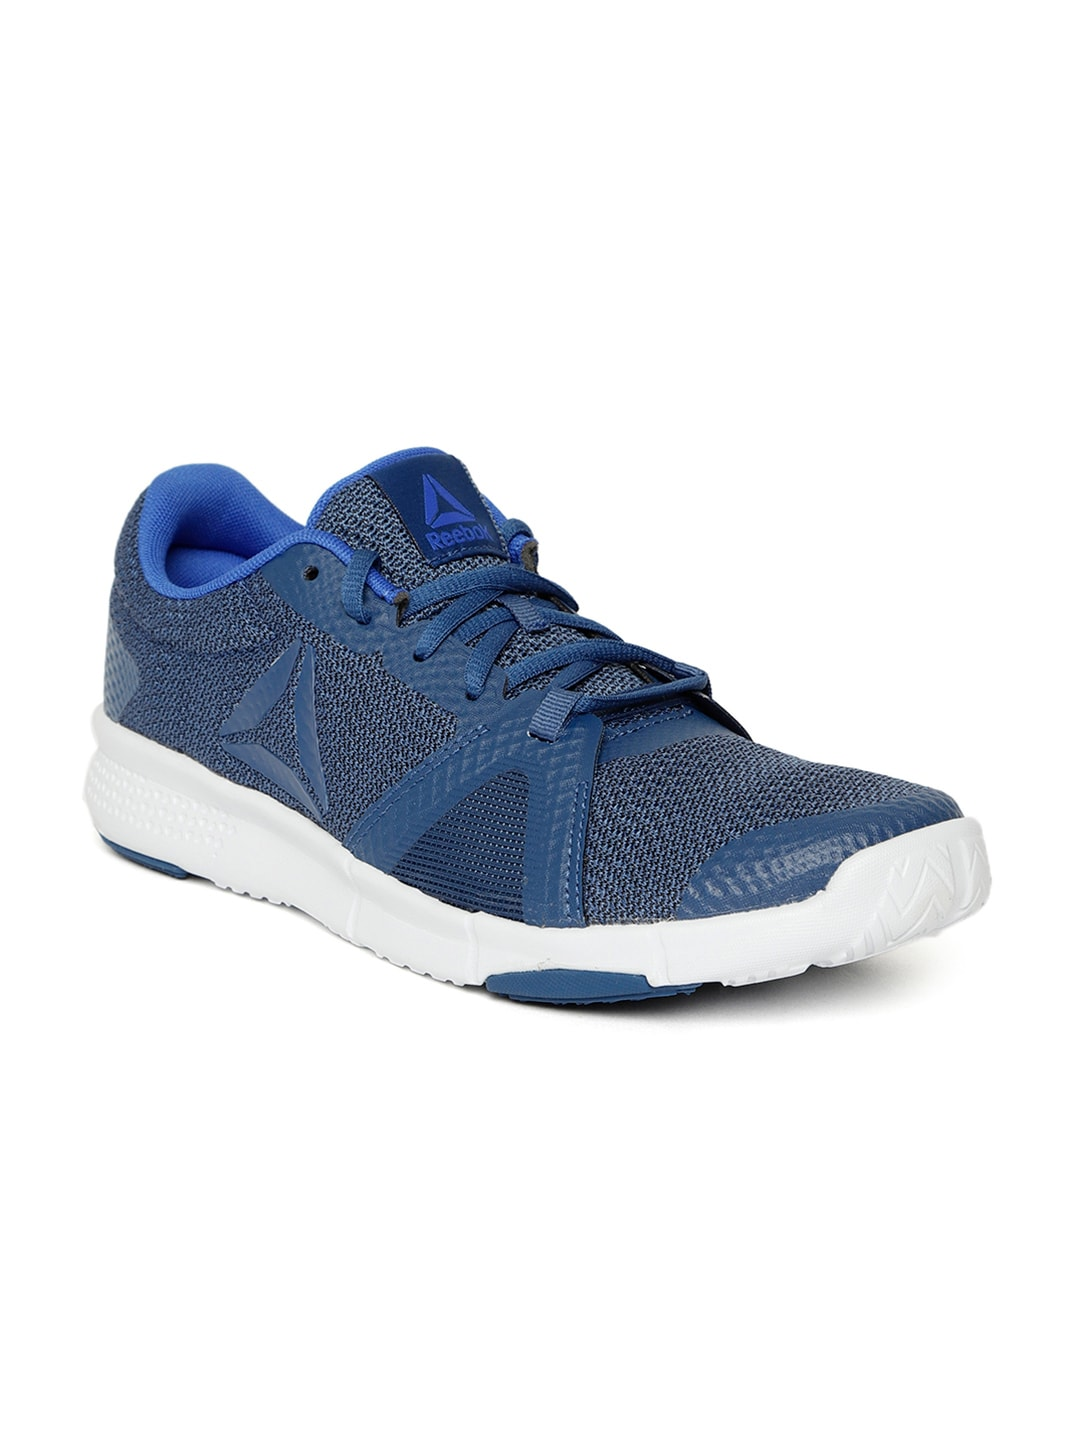 528f2d12f Reebok Training Shoes - Buy Reebok Training Shoes online in India